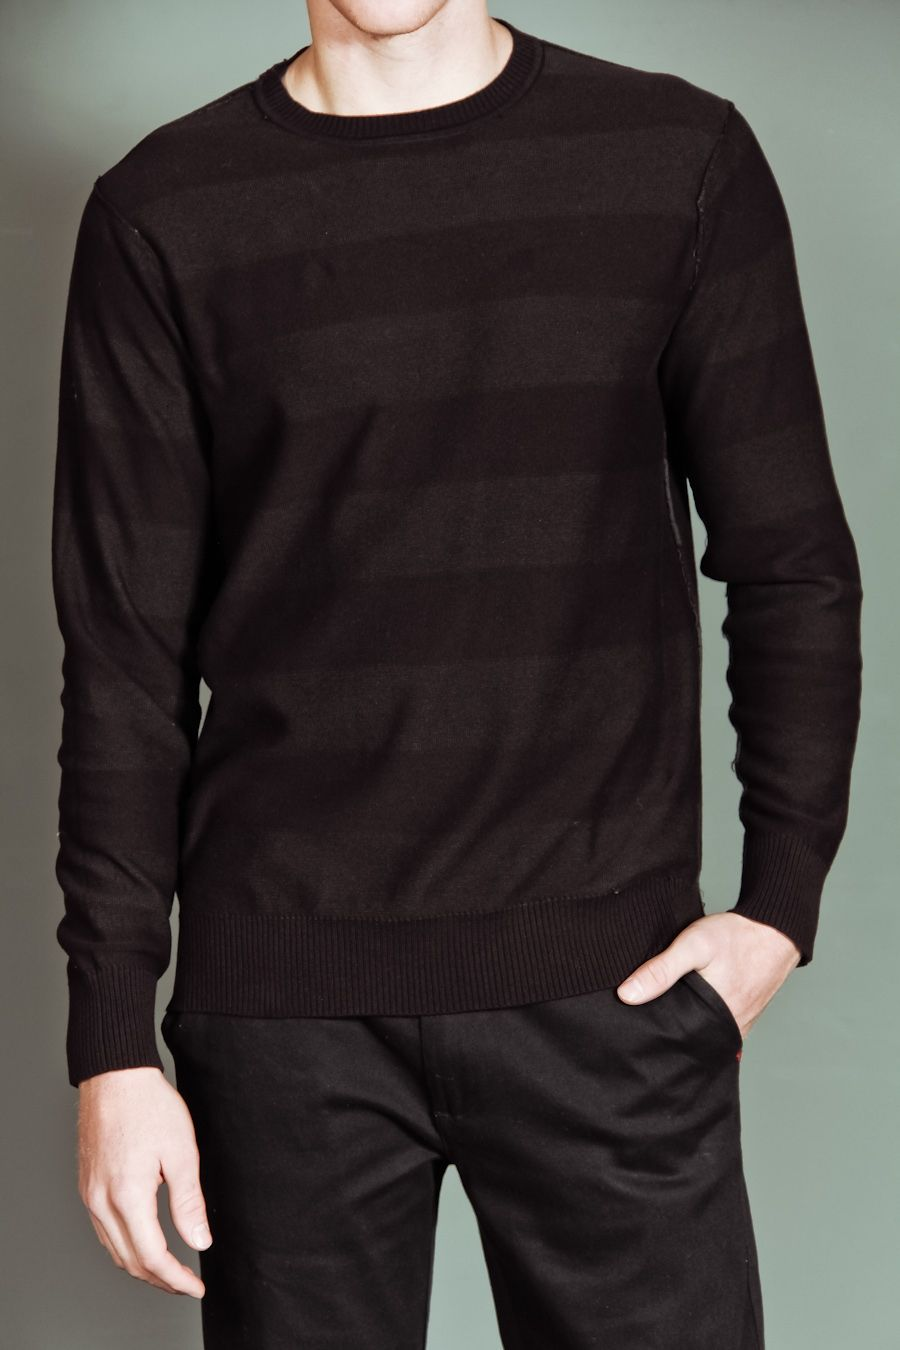 Dark #striped #sweater (via @JackThreads www.jackthreads.com)